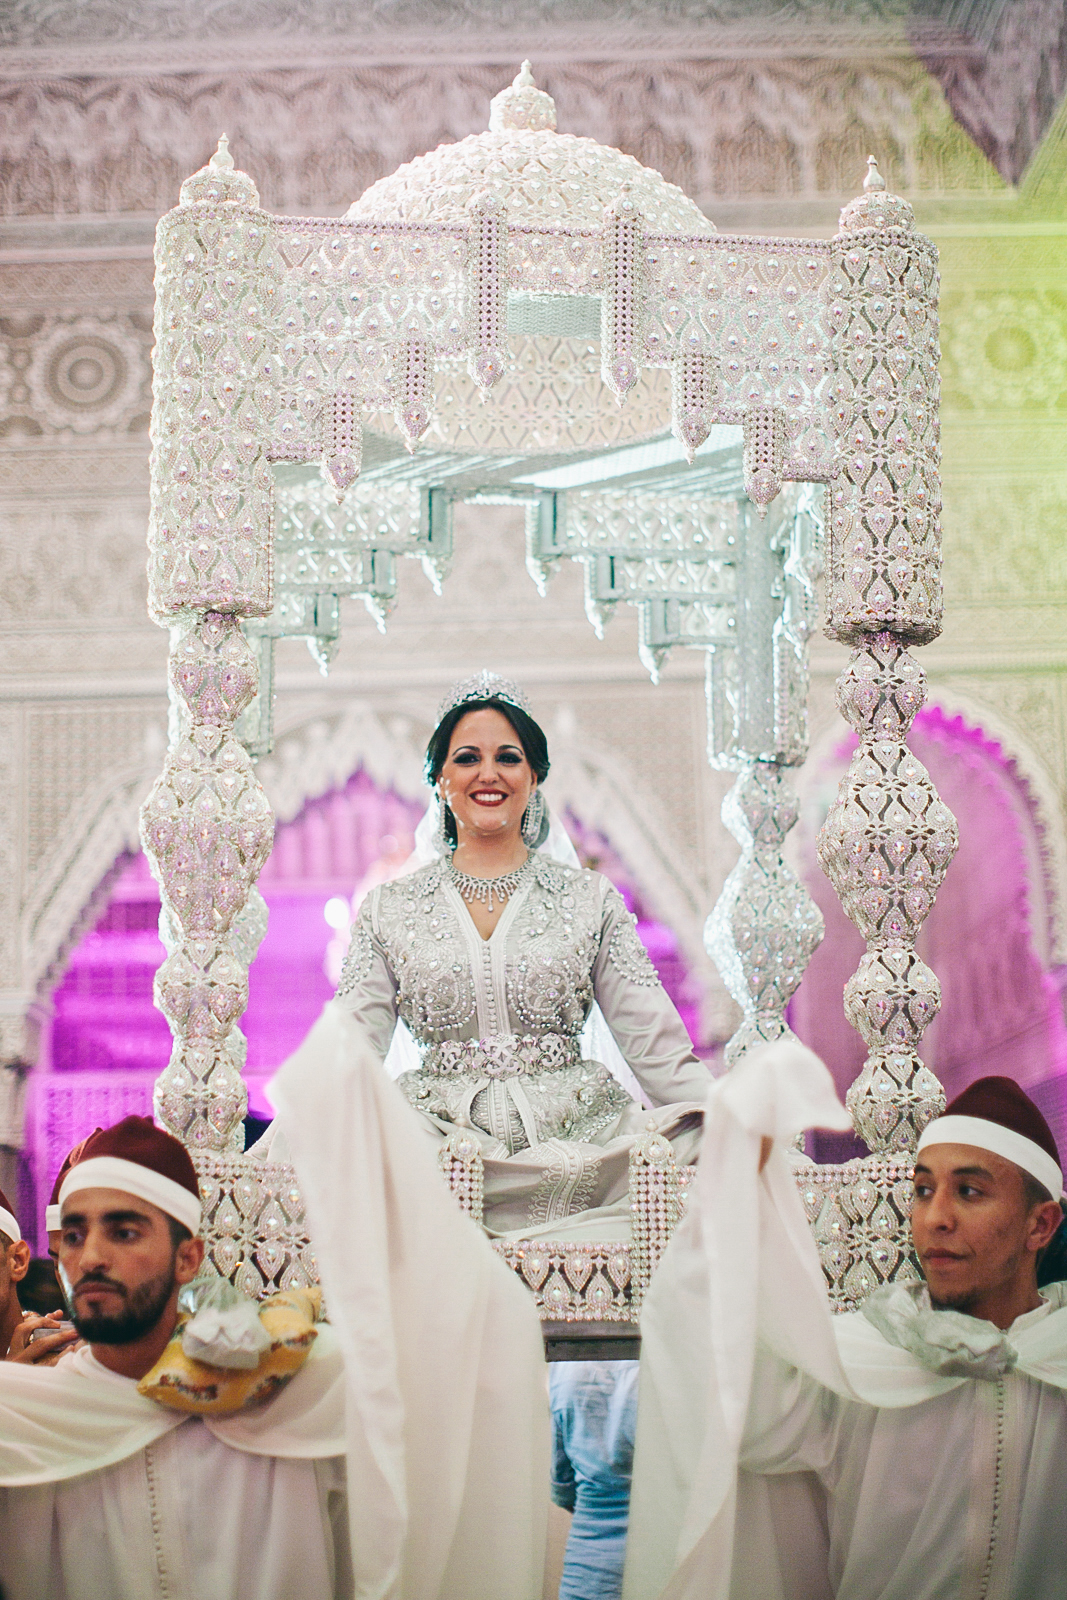 traditional_moroccan_wedding_photographry_casablanca_morocco_houda_vivek_ebony_siovhan_bokeh_photography_074.jpg